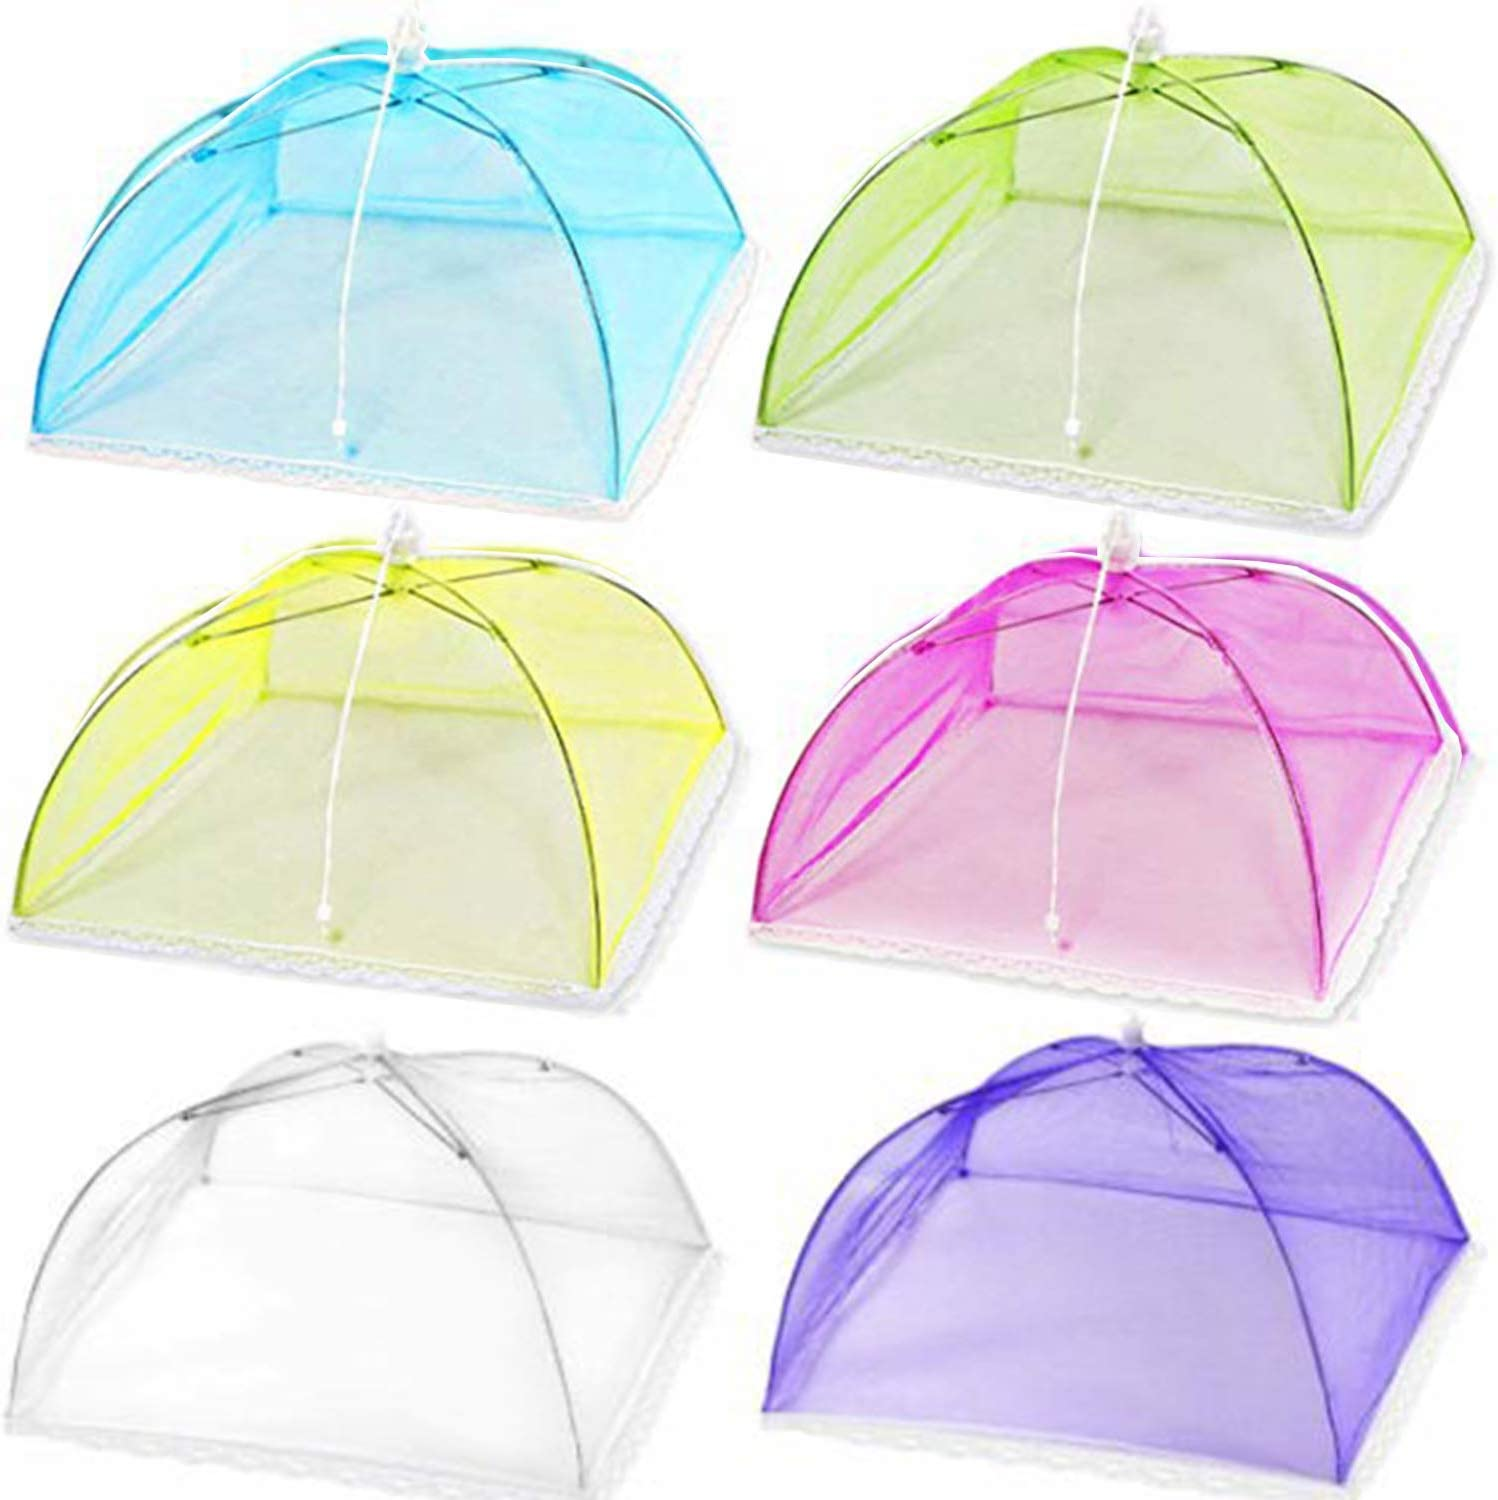 Mesh Food Cover 6 Pack 17x17 Pop-Up Mesh Food Covers Tent Umbrella for Outdoors, Screen Tents, Parties Picnics, BBQs, Camping, Reusable and Collapsible Food Cover Nets,Multicolor